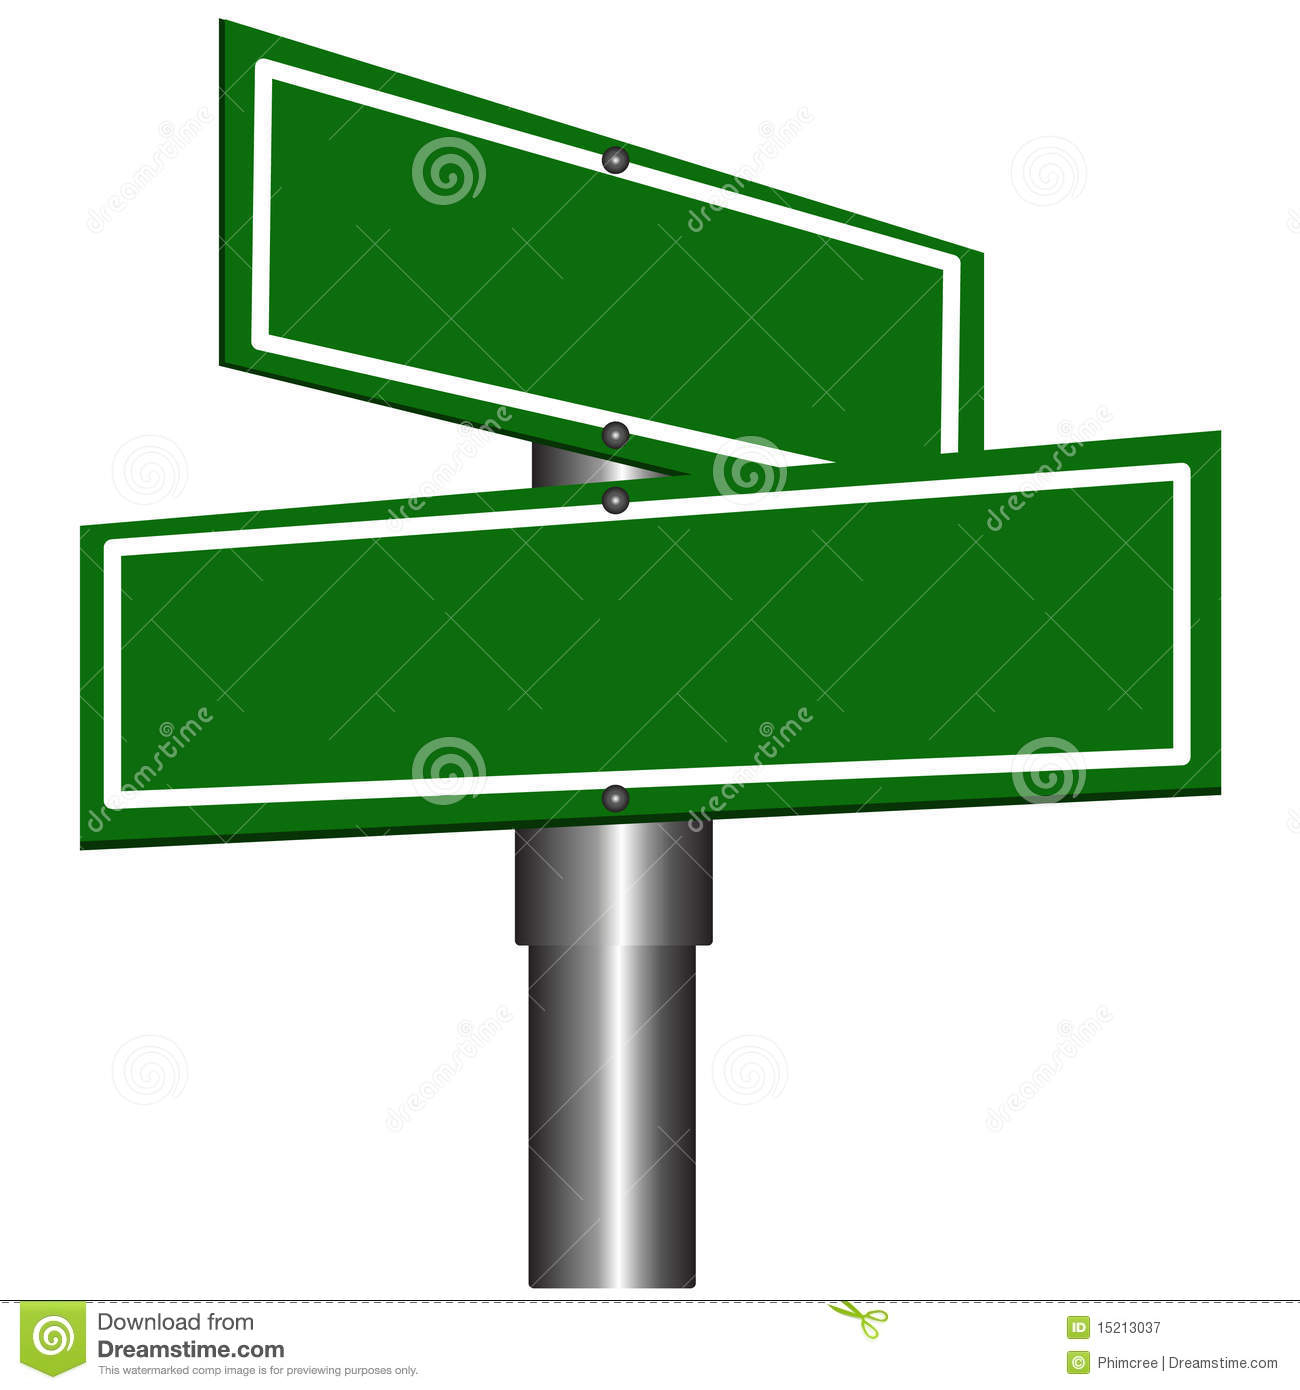 street signs clipart at getdrawings com free for personal use rh getdrawings com bourbon street sign clip art street sign clip art images